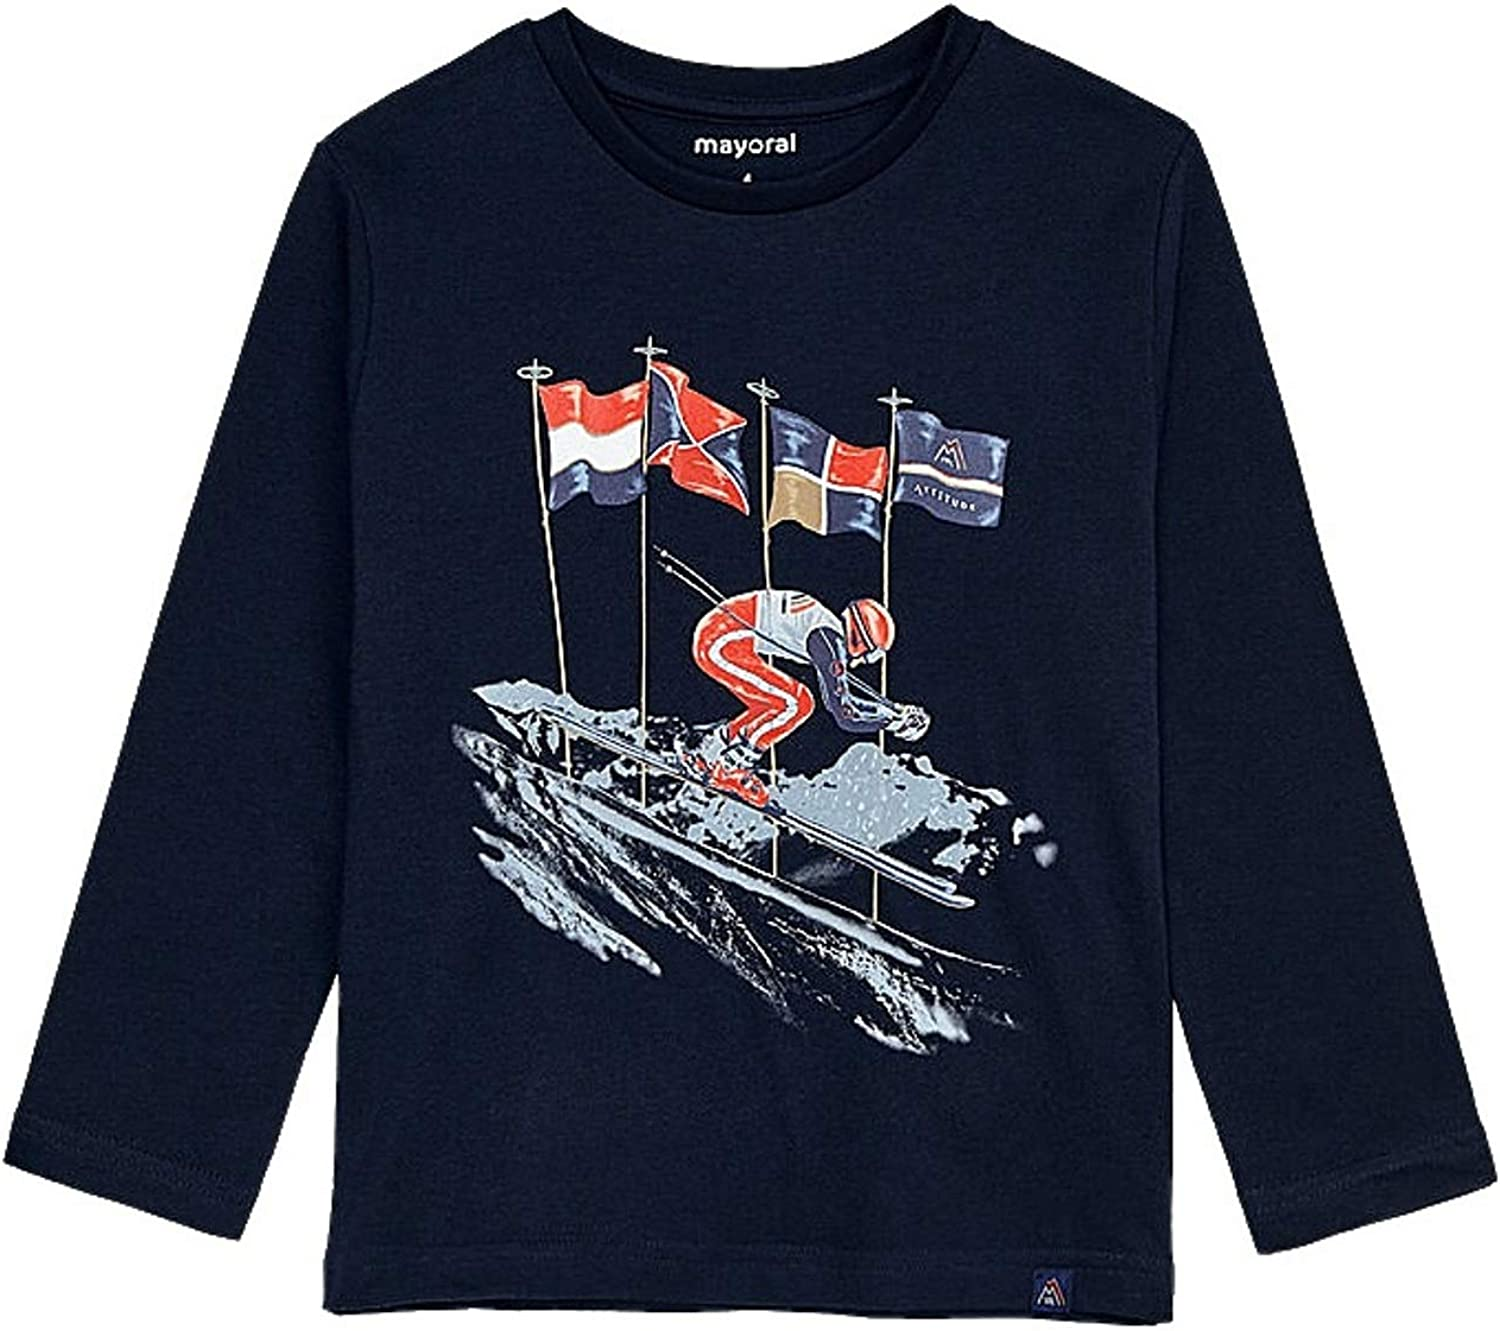 Mayoral - L/s t-Shirt for Boys - 4037, Navy